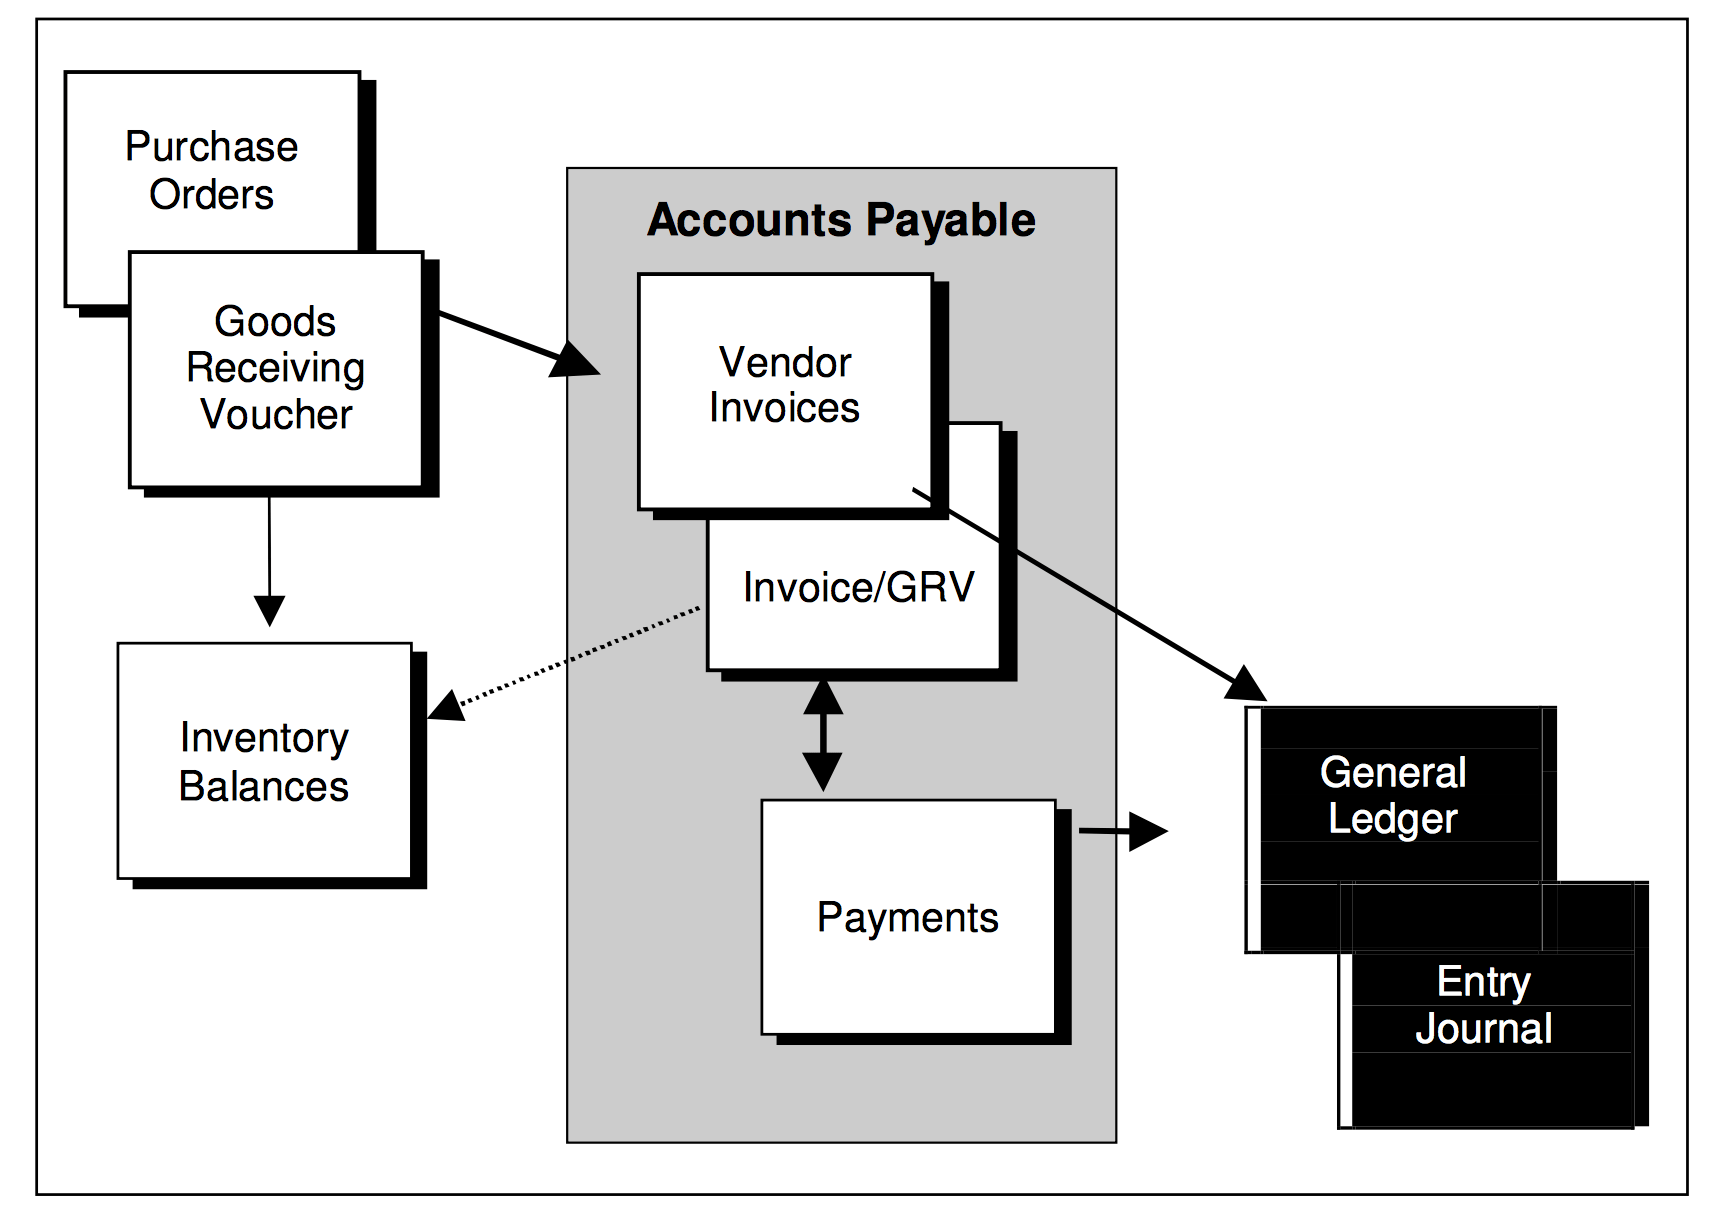 Payables - Top Priority Systems